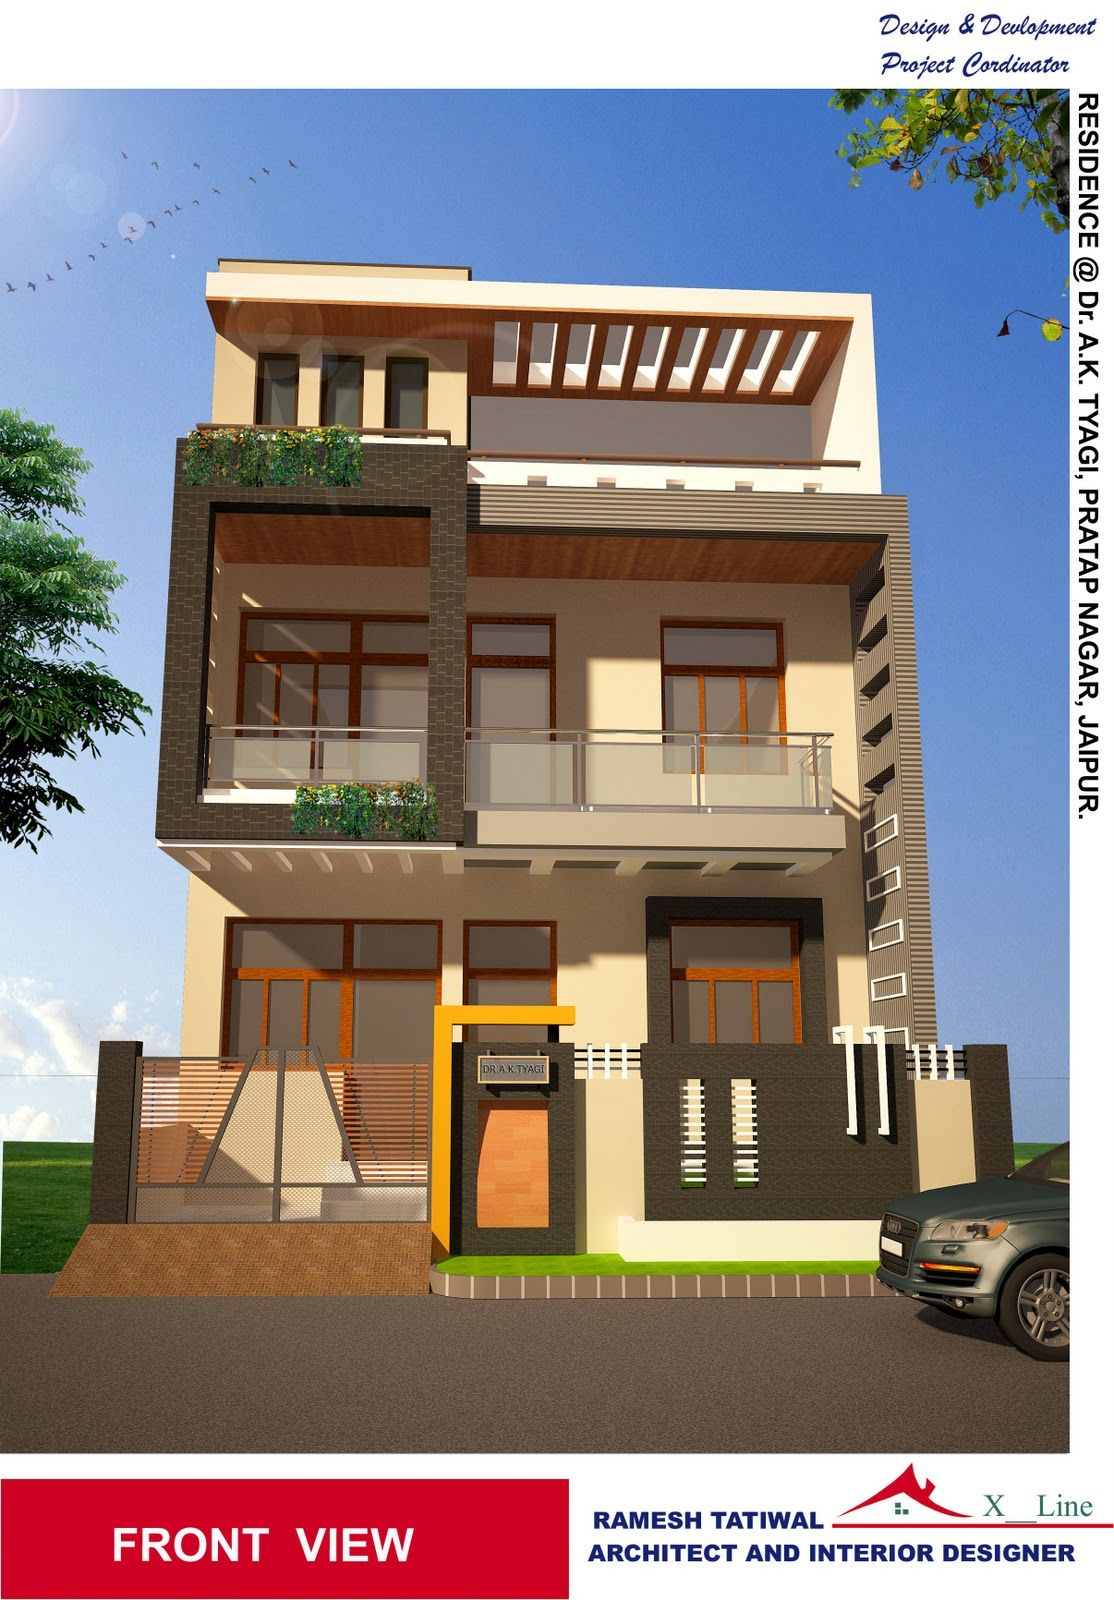 New architectural designs for 2 bedroom house designs in india